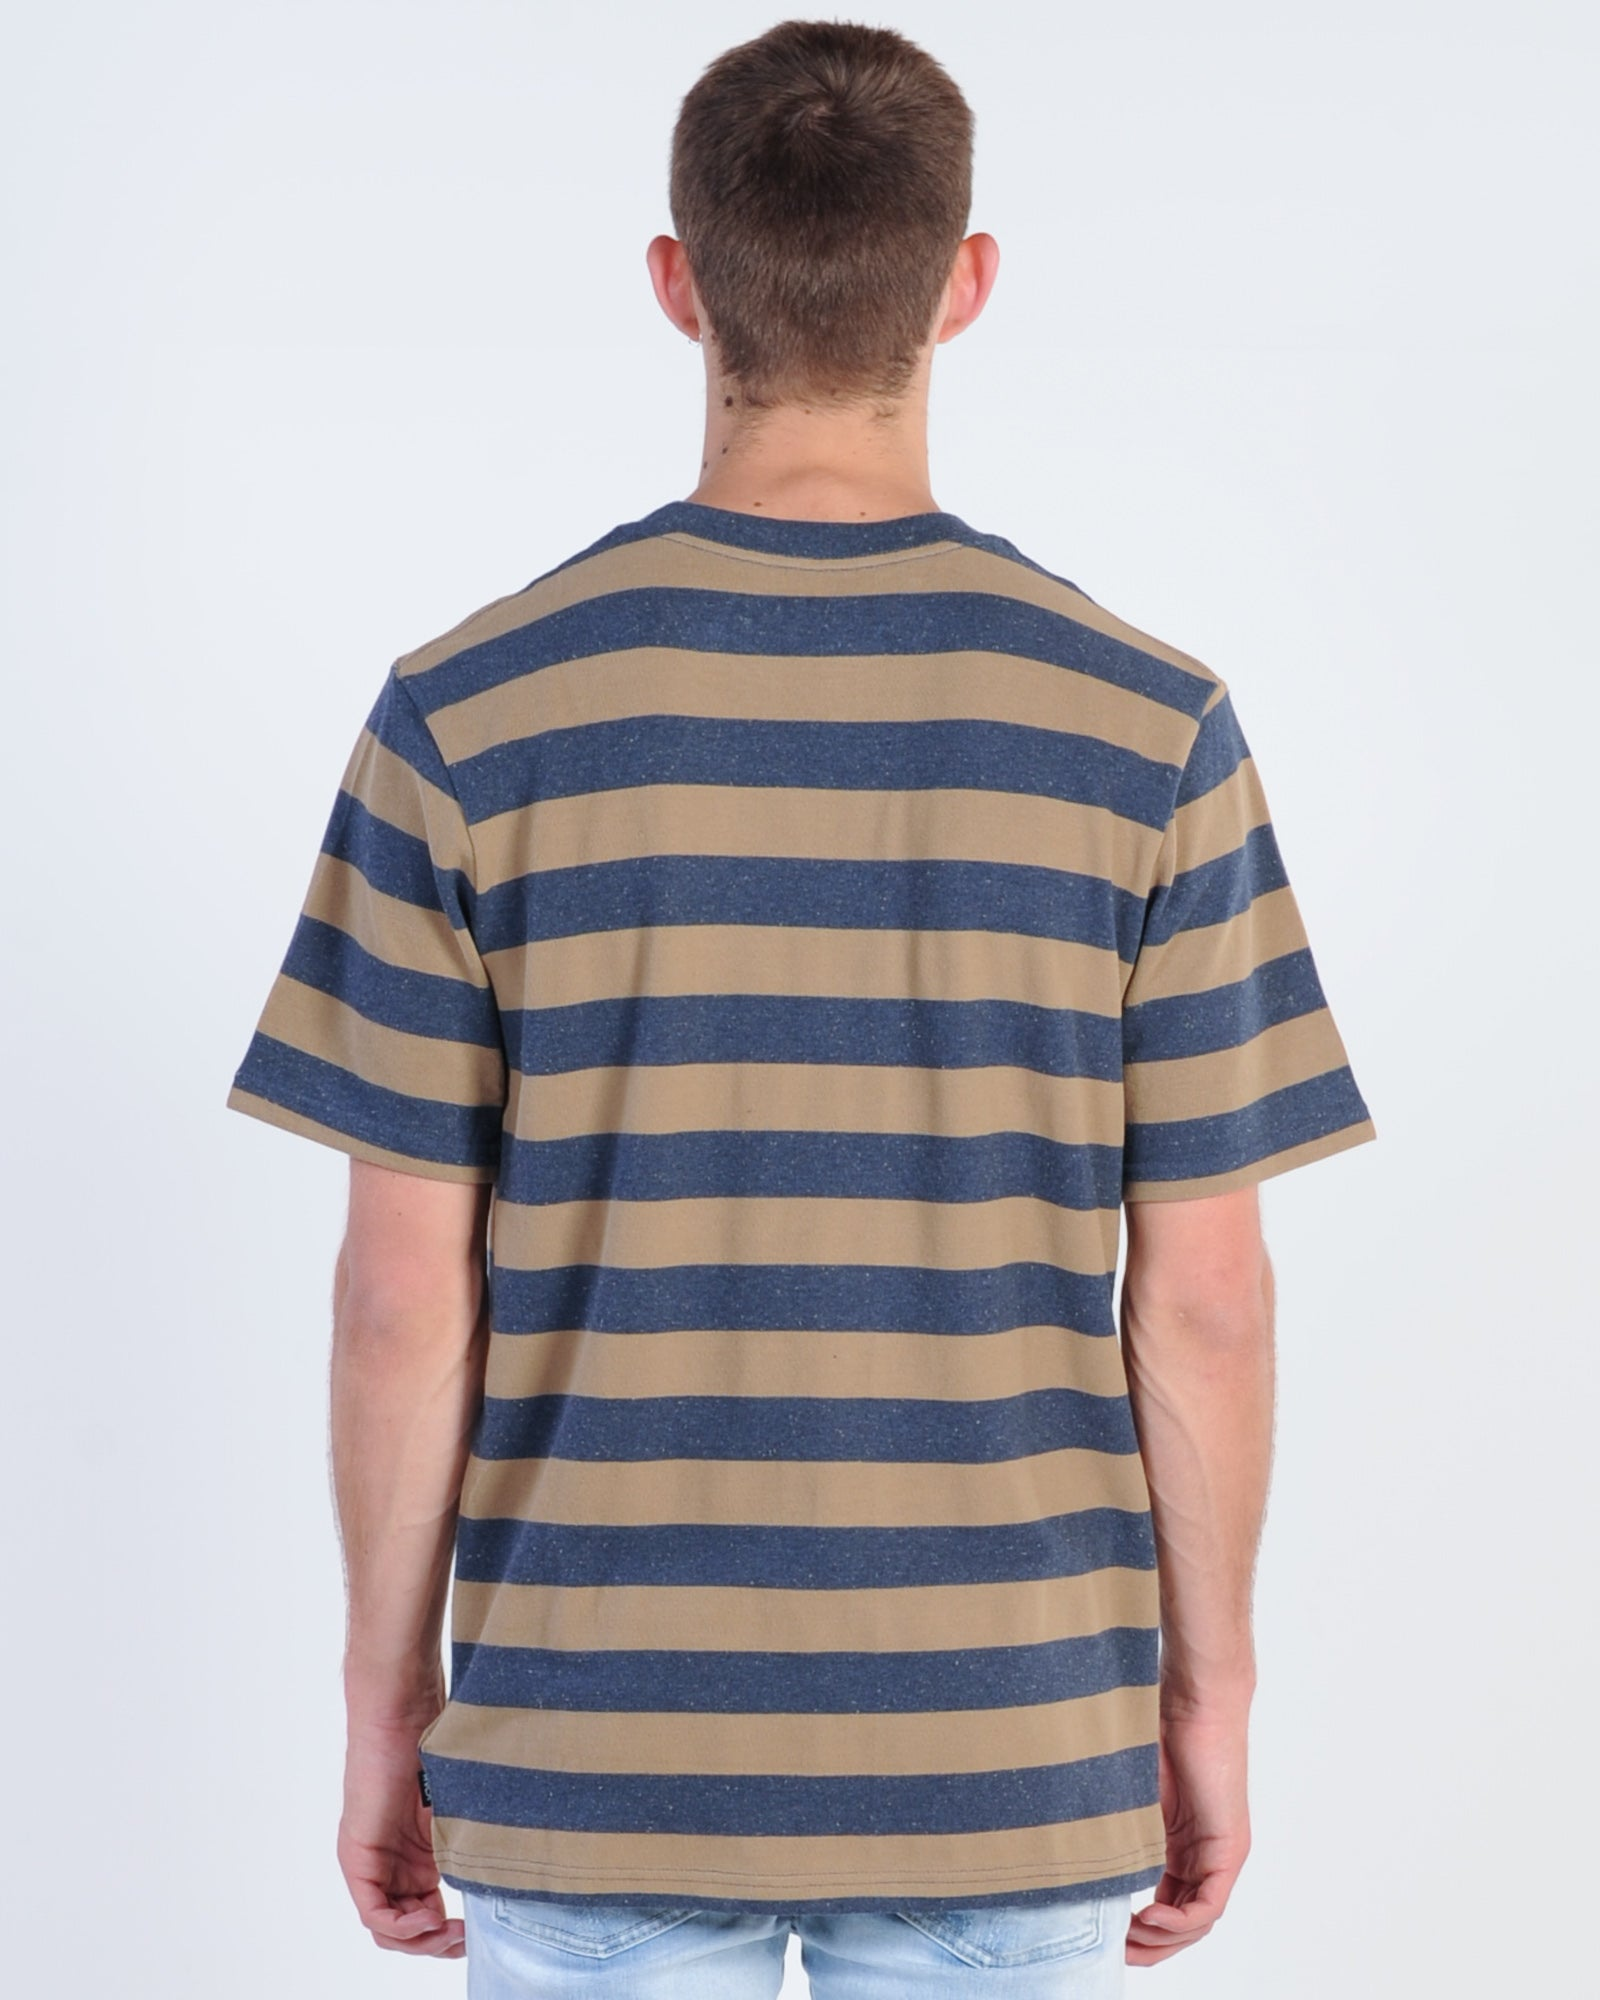 Rvca Shallow End Stripe Tee - Navy Marle